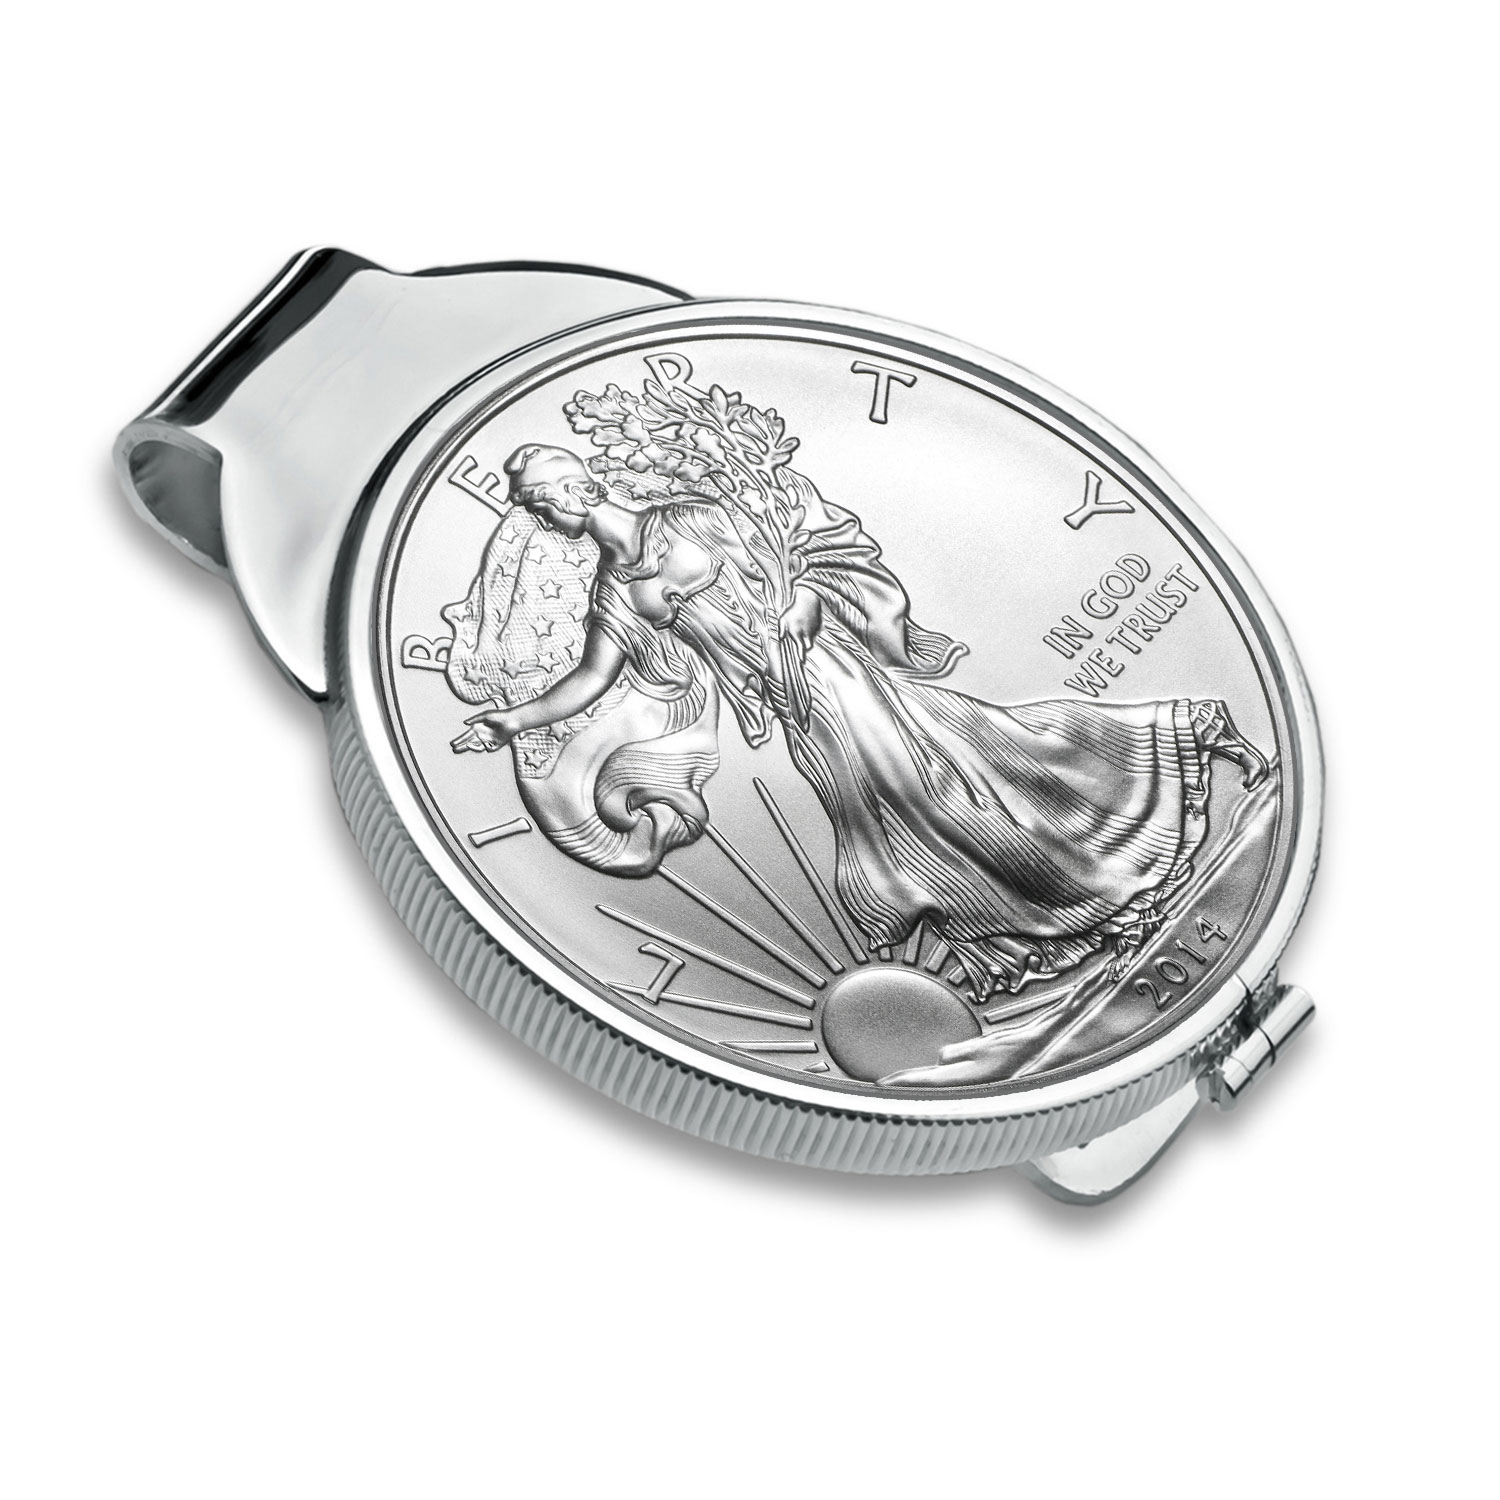 Sterling Silver Polished Coin Money Clip - 40.6 mm